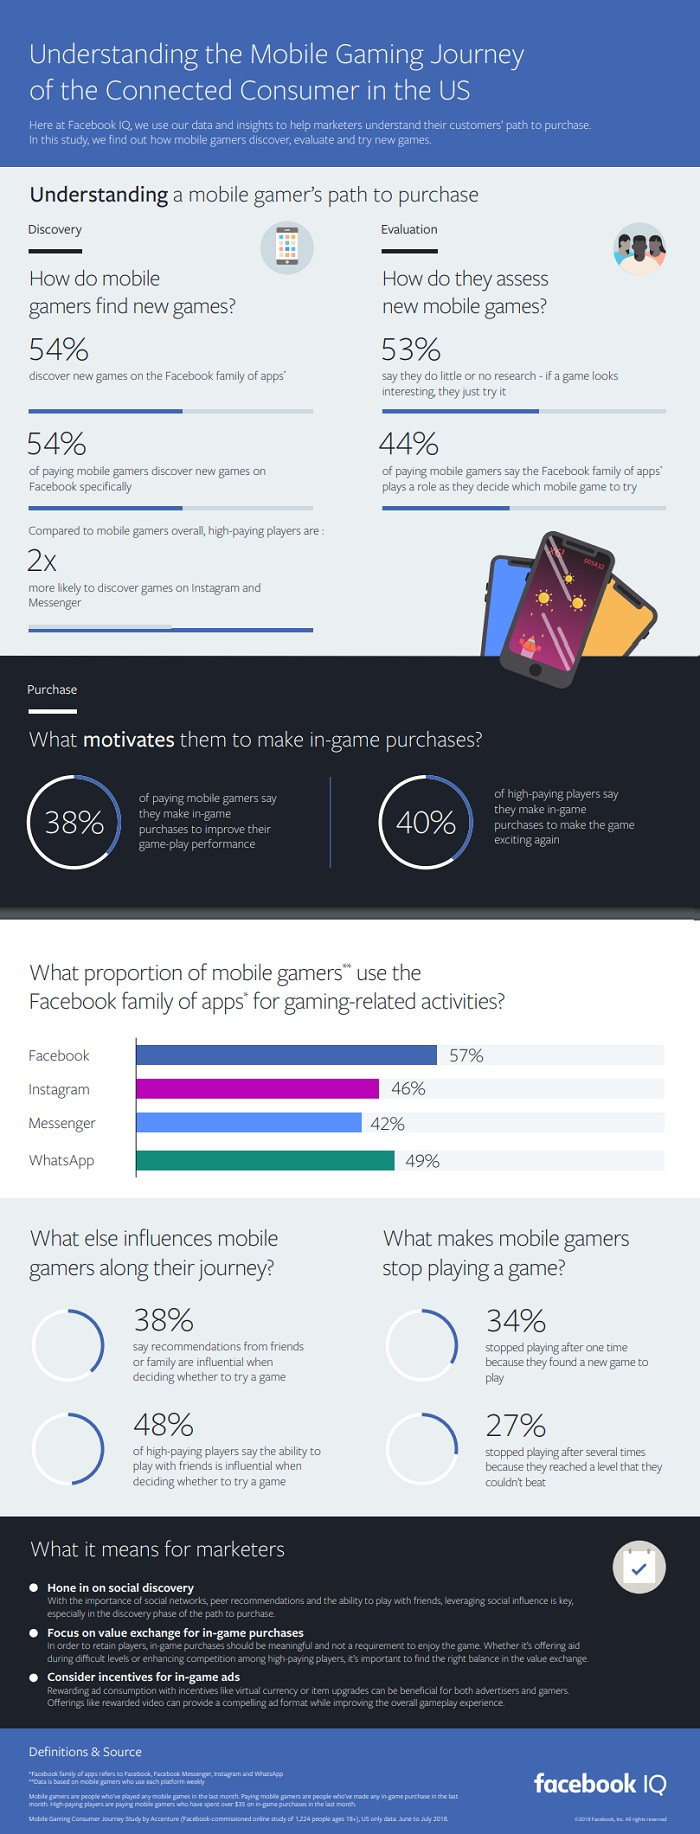 Infographic looks at mobile gaming trends among US users